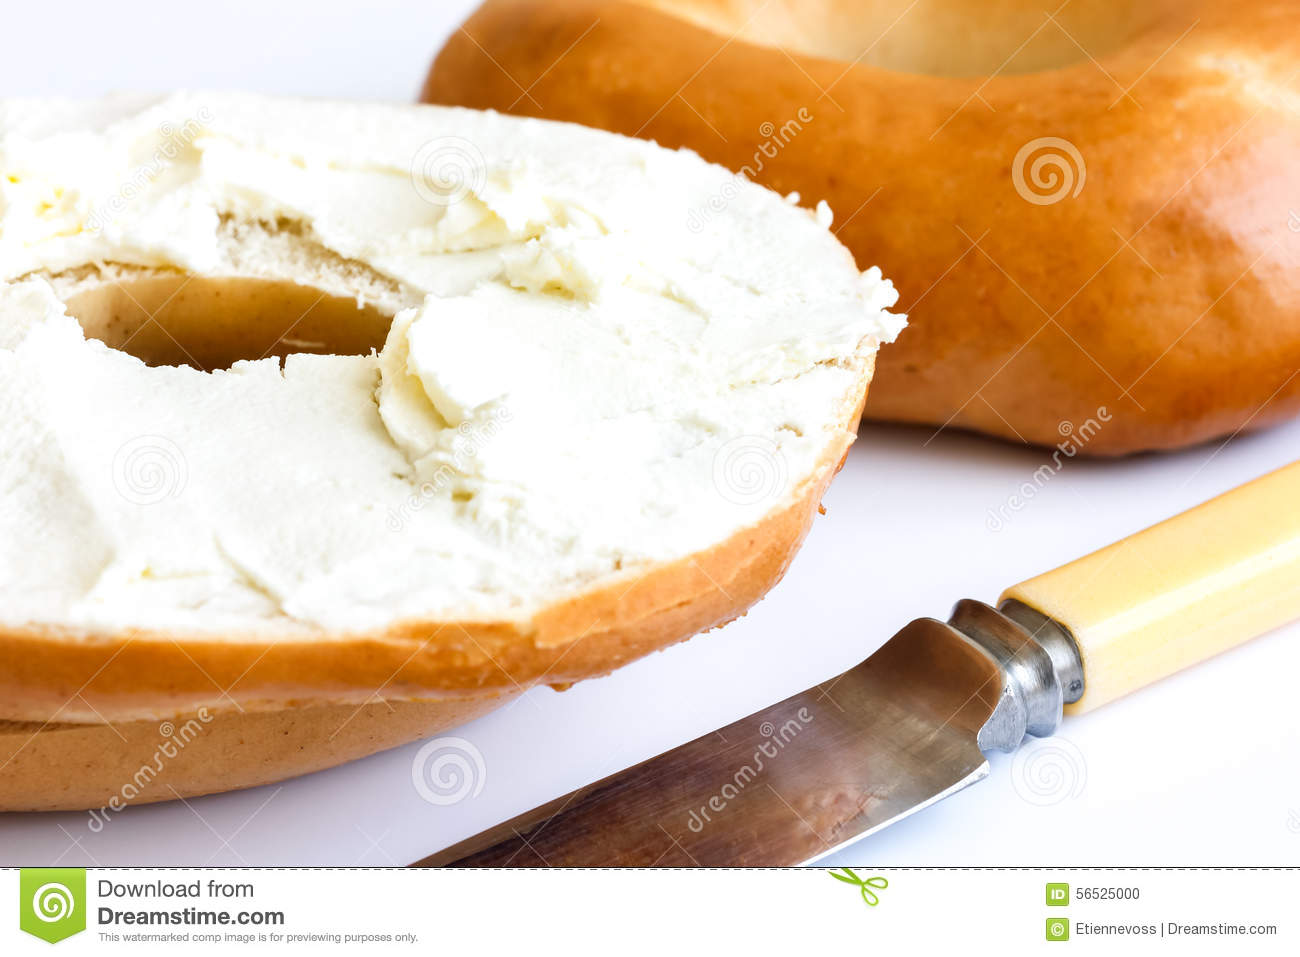 Plain Bagel With Knife, Spread With Cream Cheese, Detail